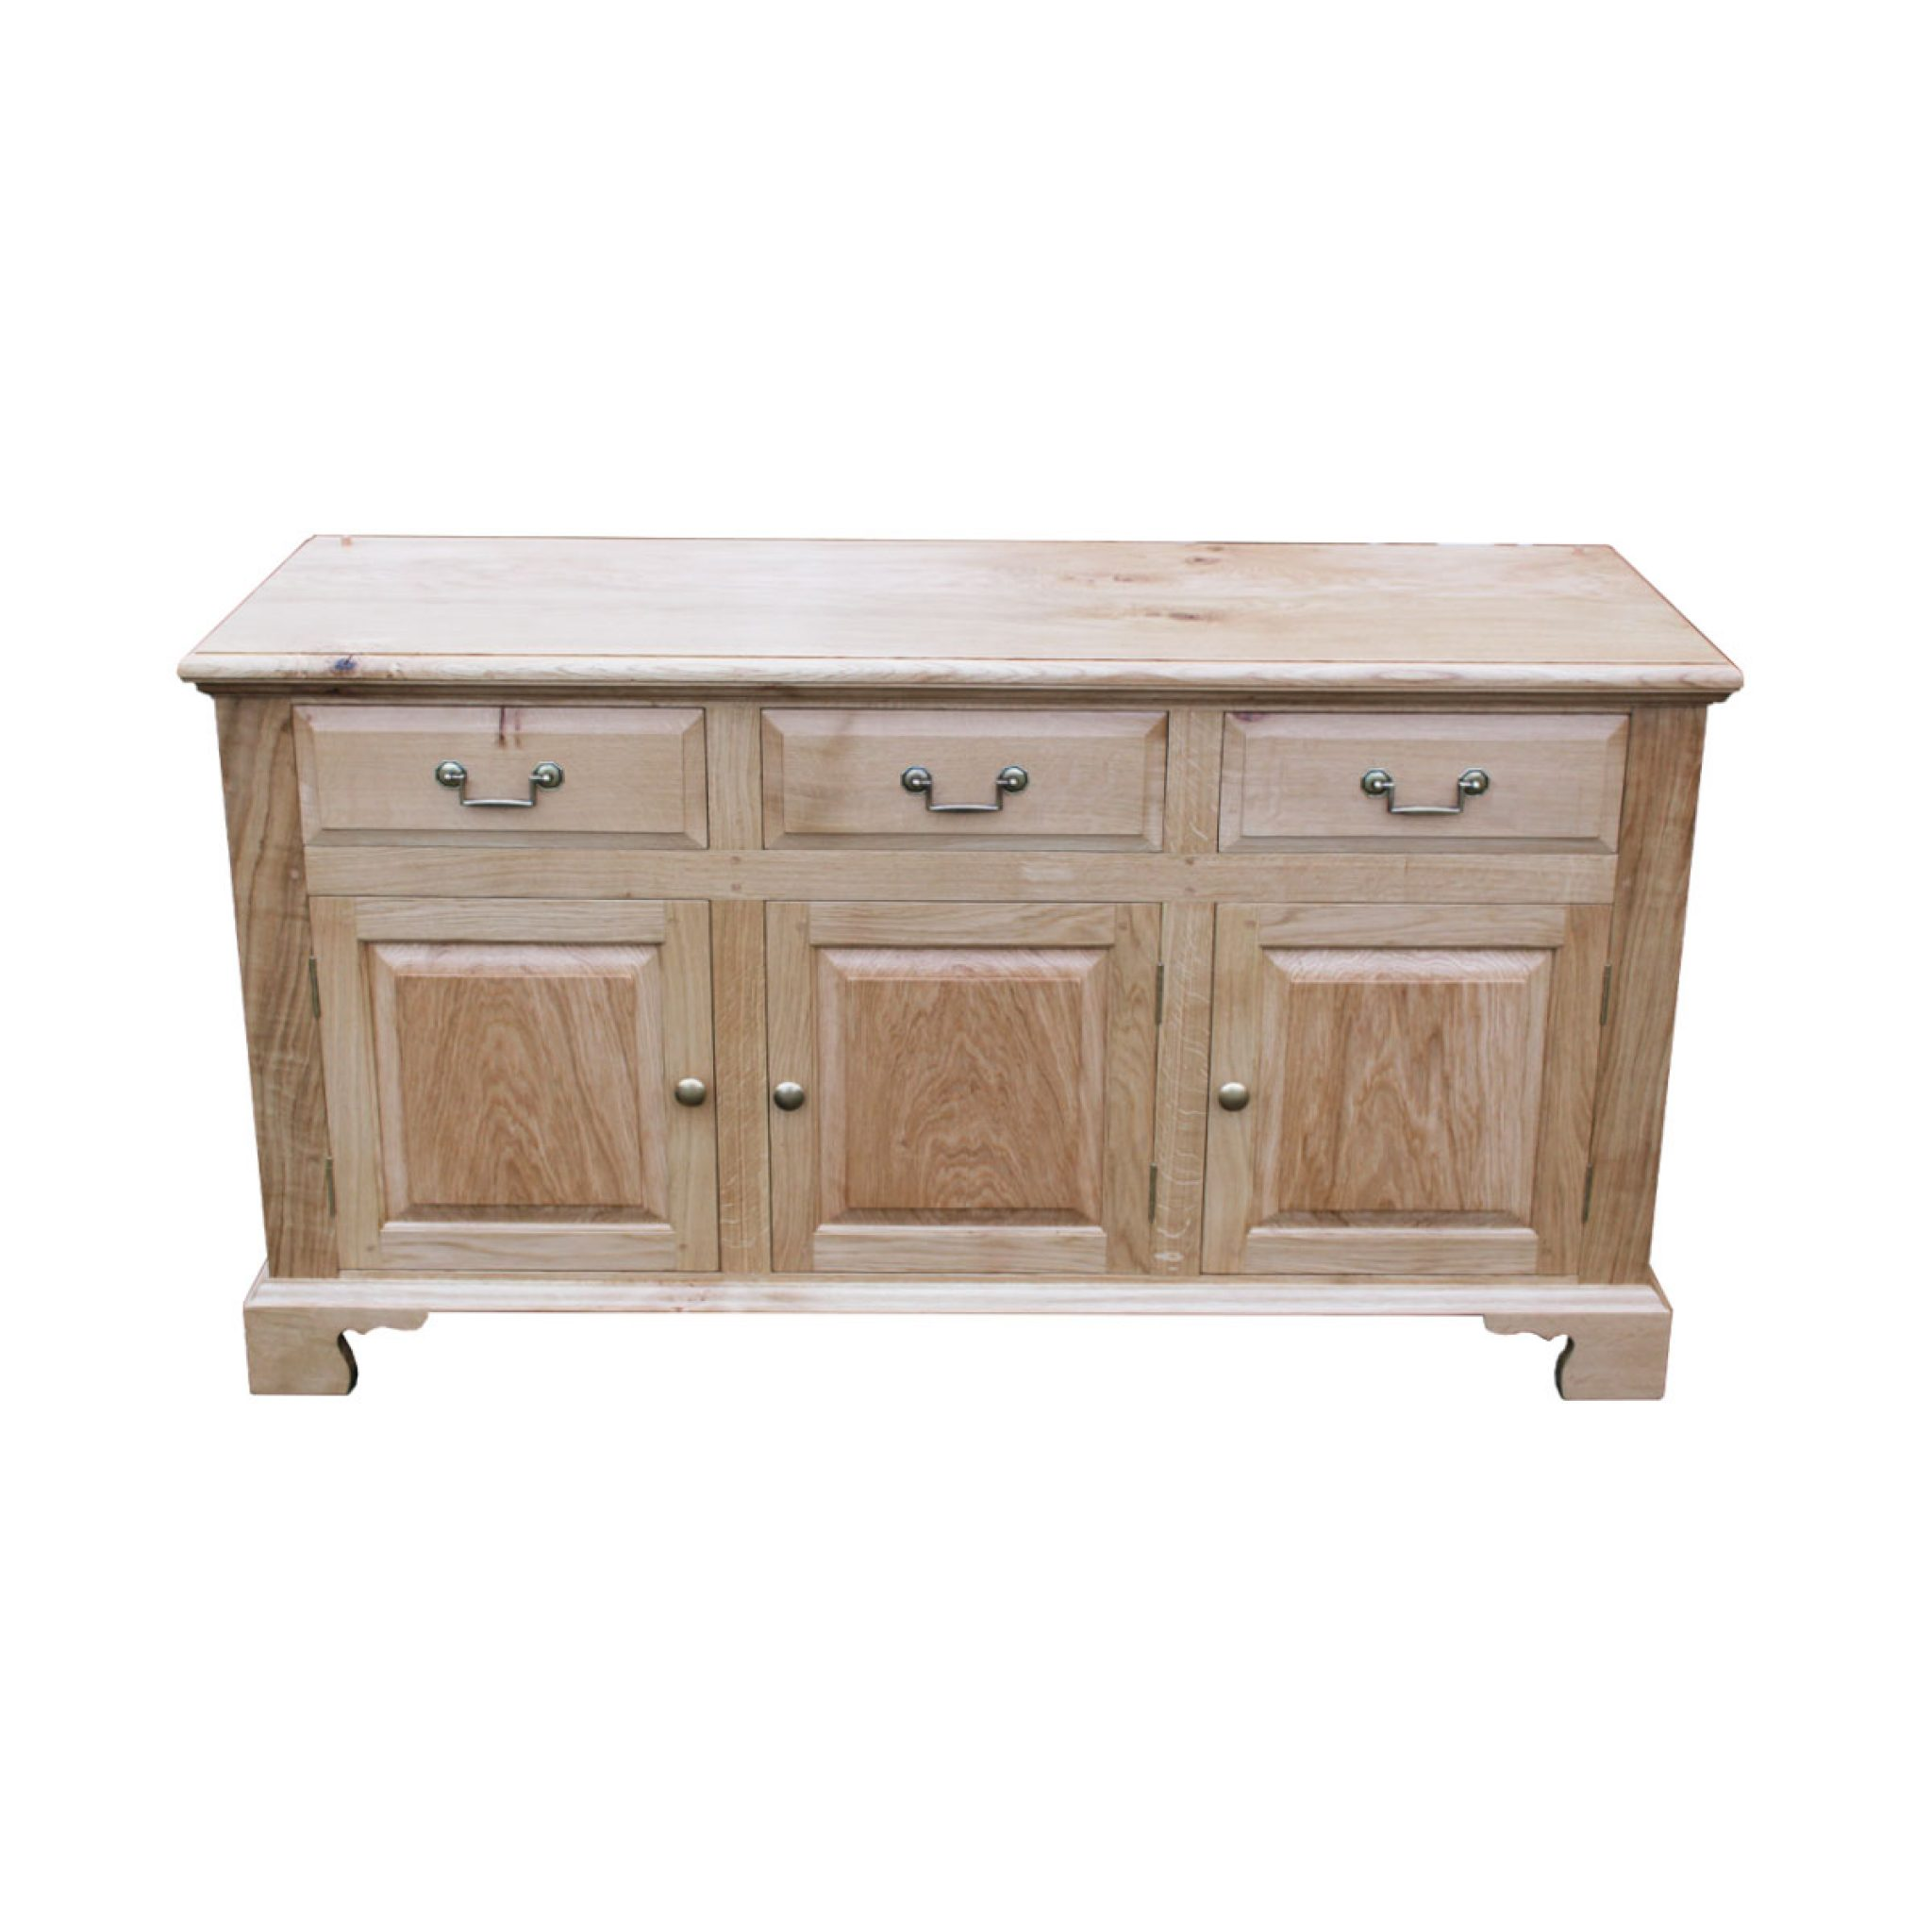 Handmade Oak Furniture Acle